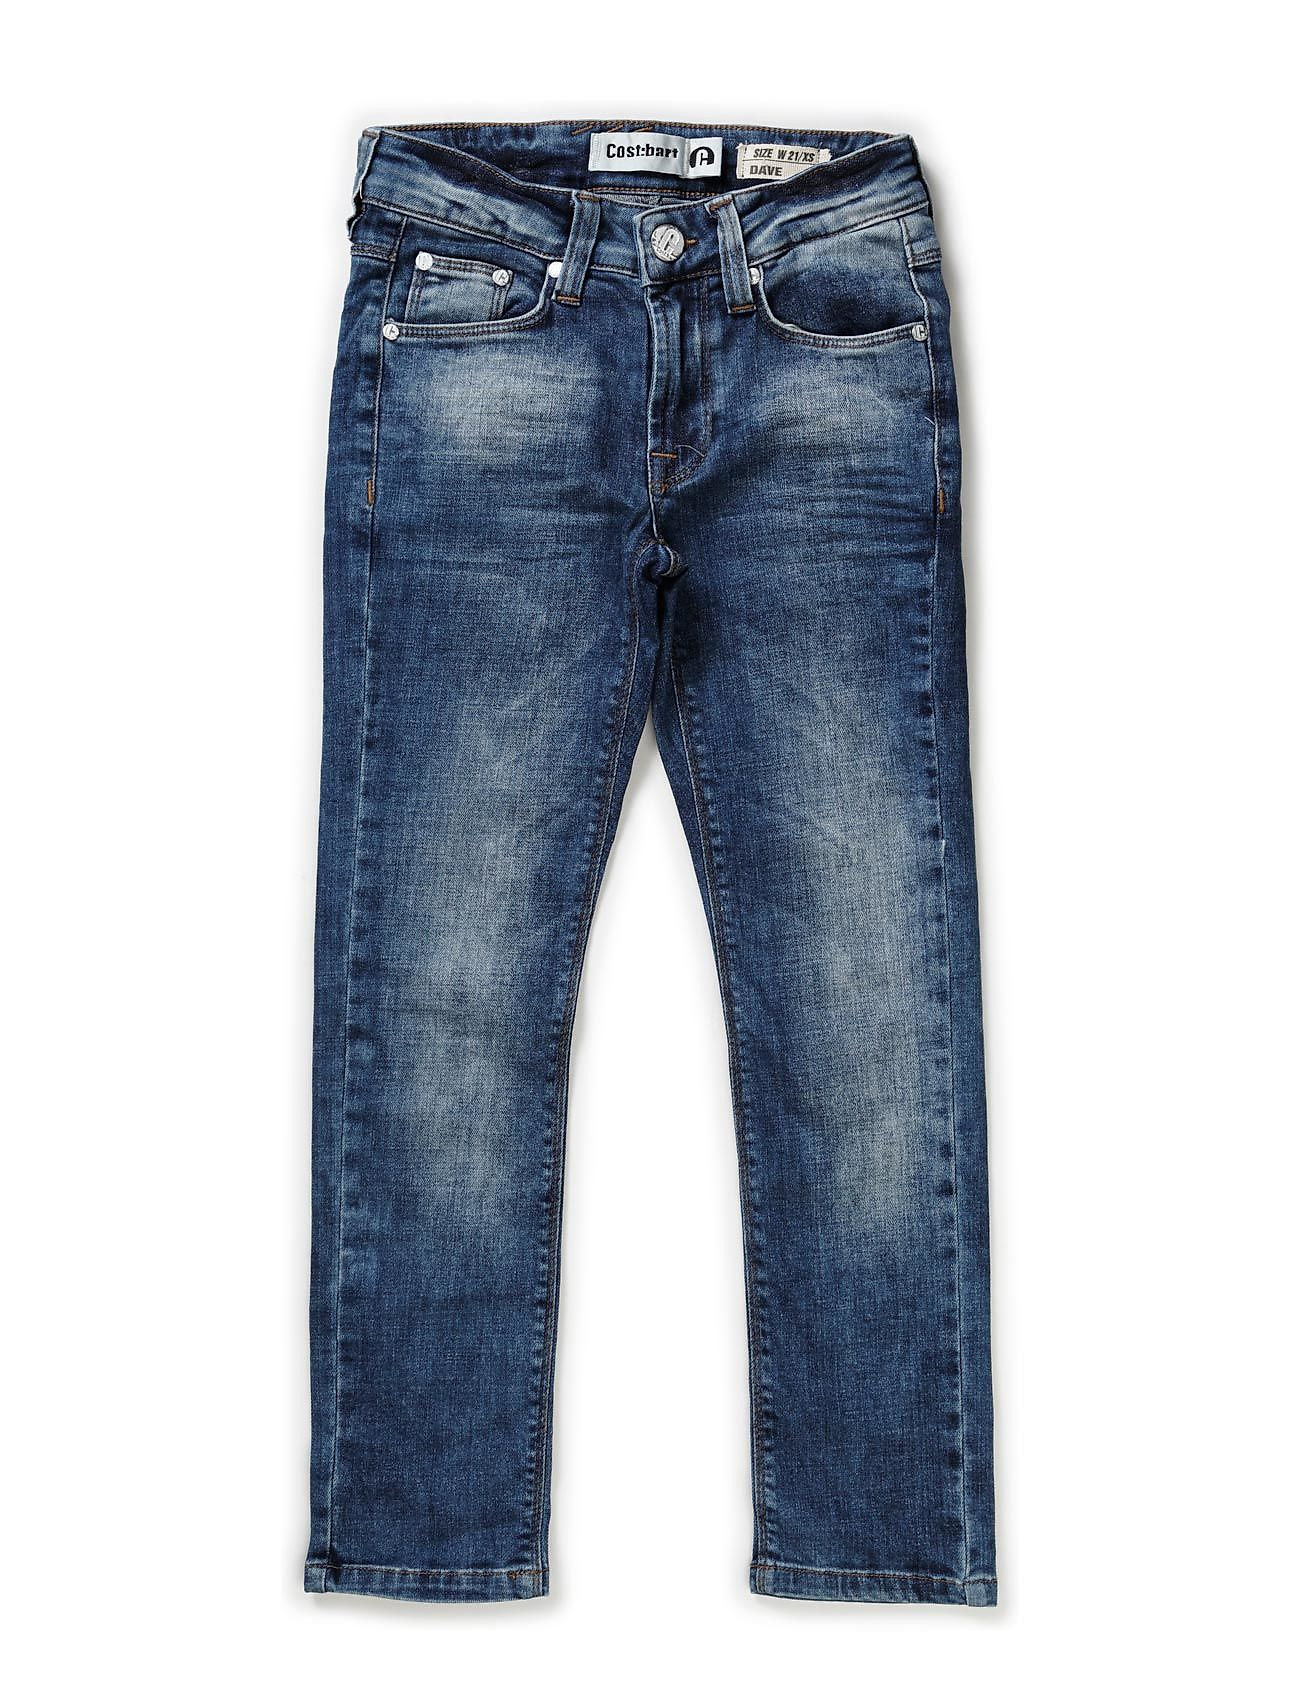 CostBart Dave Jeans - 836-blue used denim